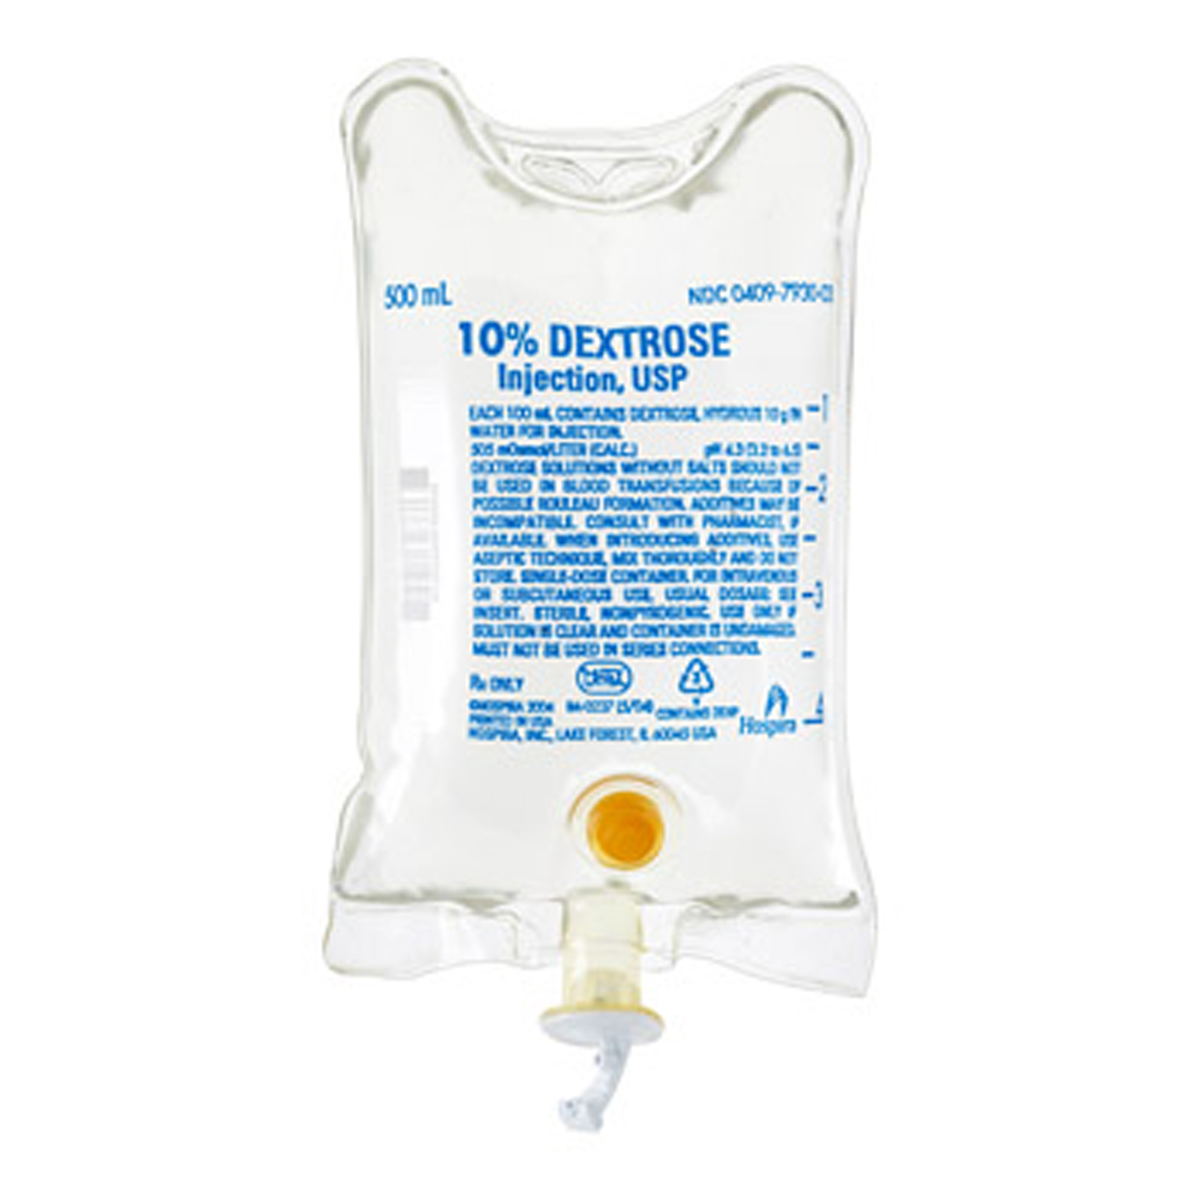 Prehospital Use of 10% Dextrose for Management of Severe